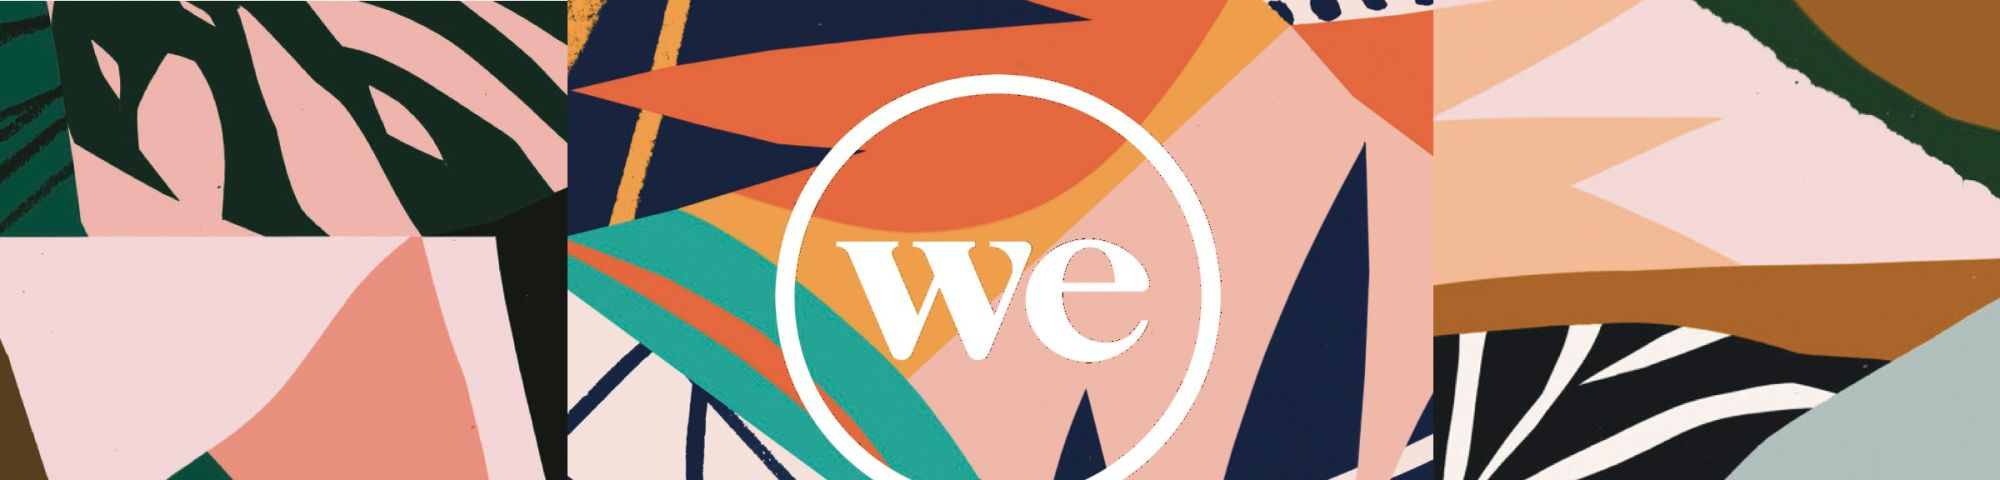 We Work Logo with colourful background